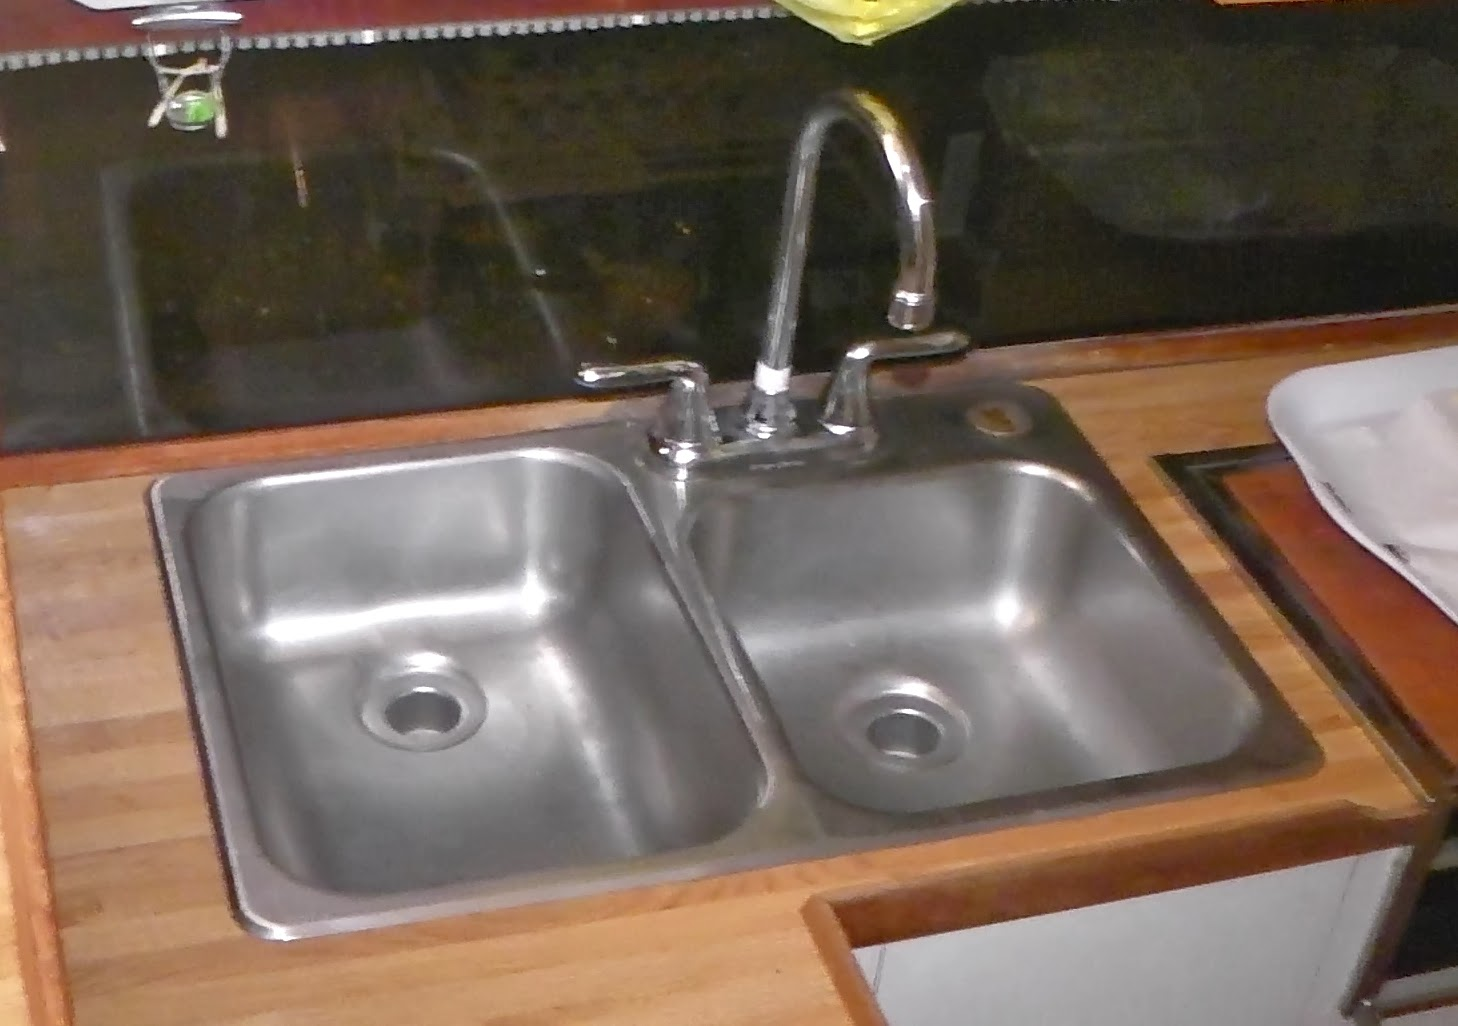 Silverton 34C: Removing a leaky faucet